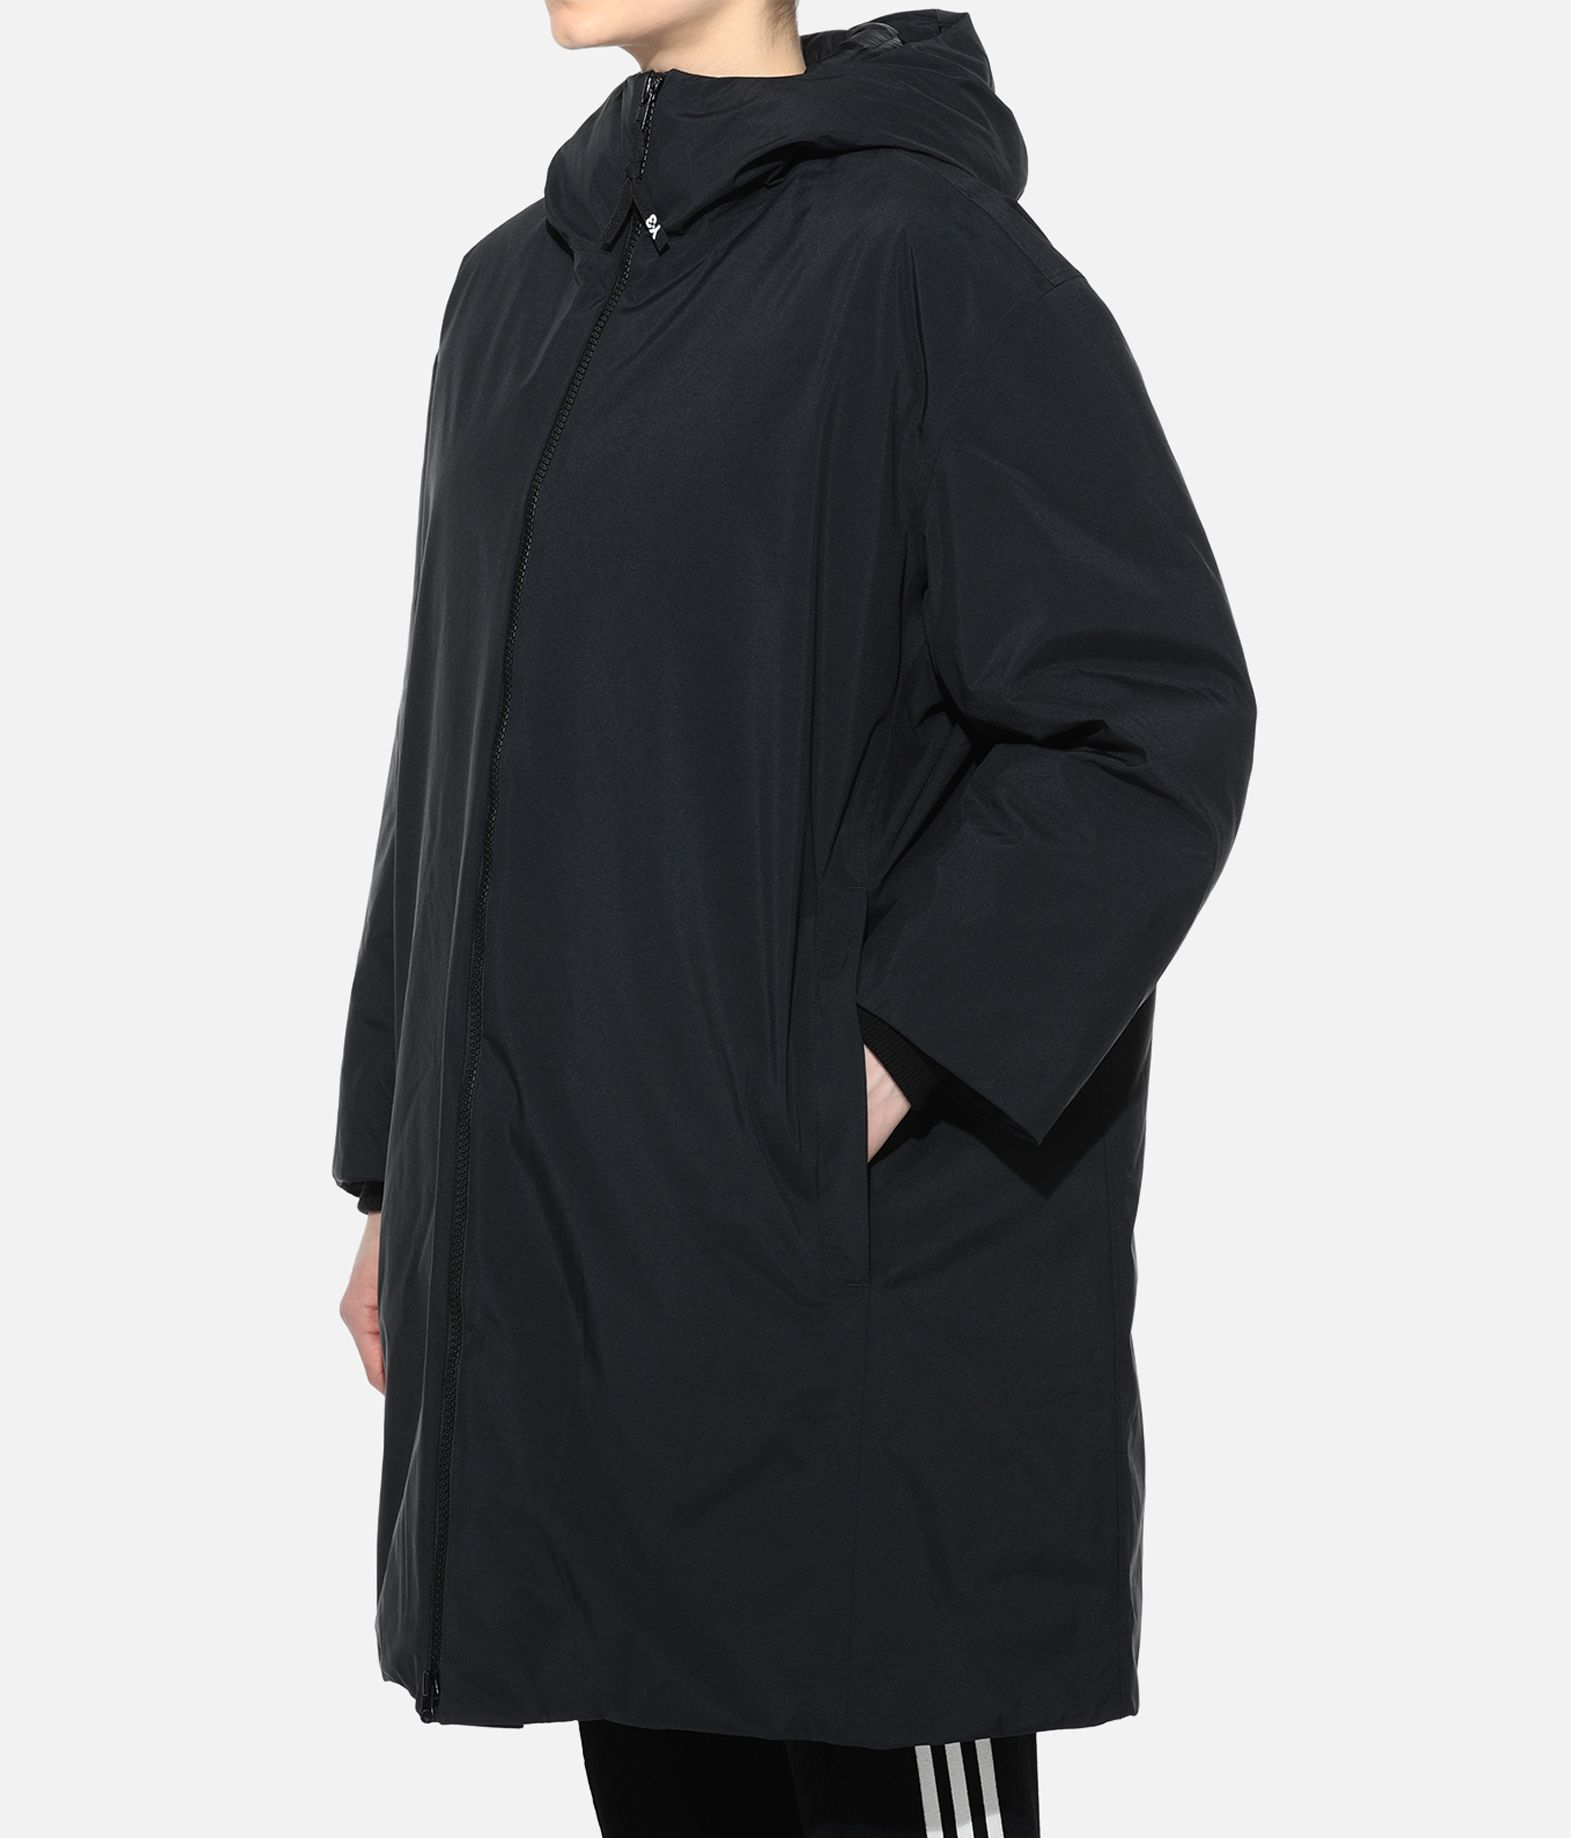 Y-3 Y-3 GORE-TEX Down Parka Jacket Woman e